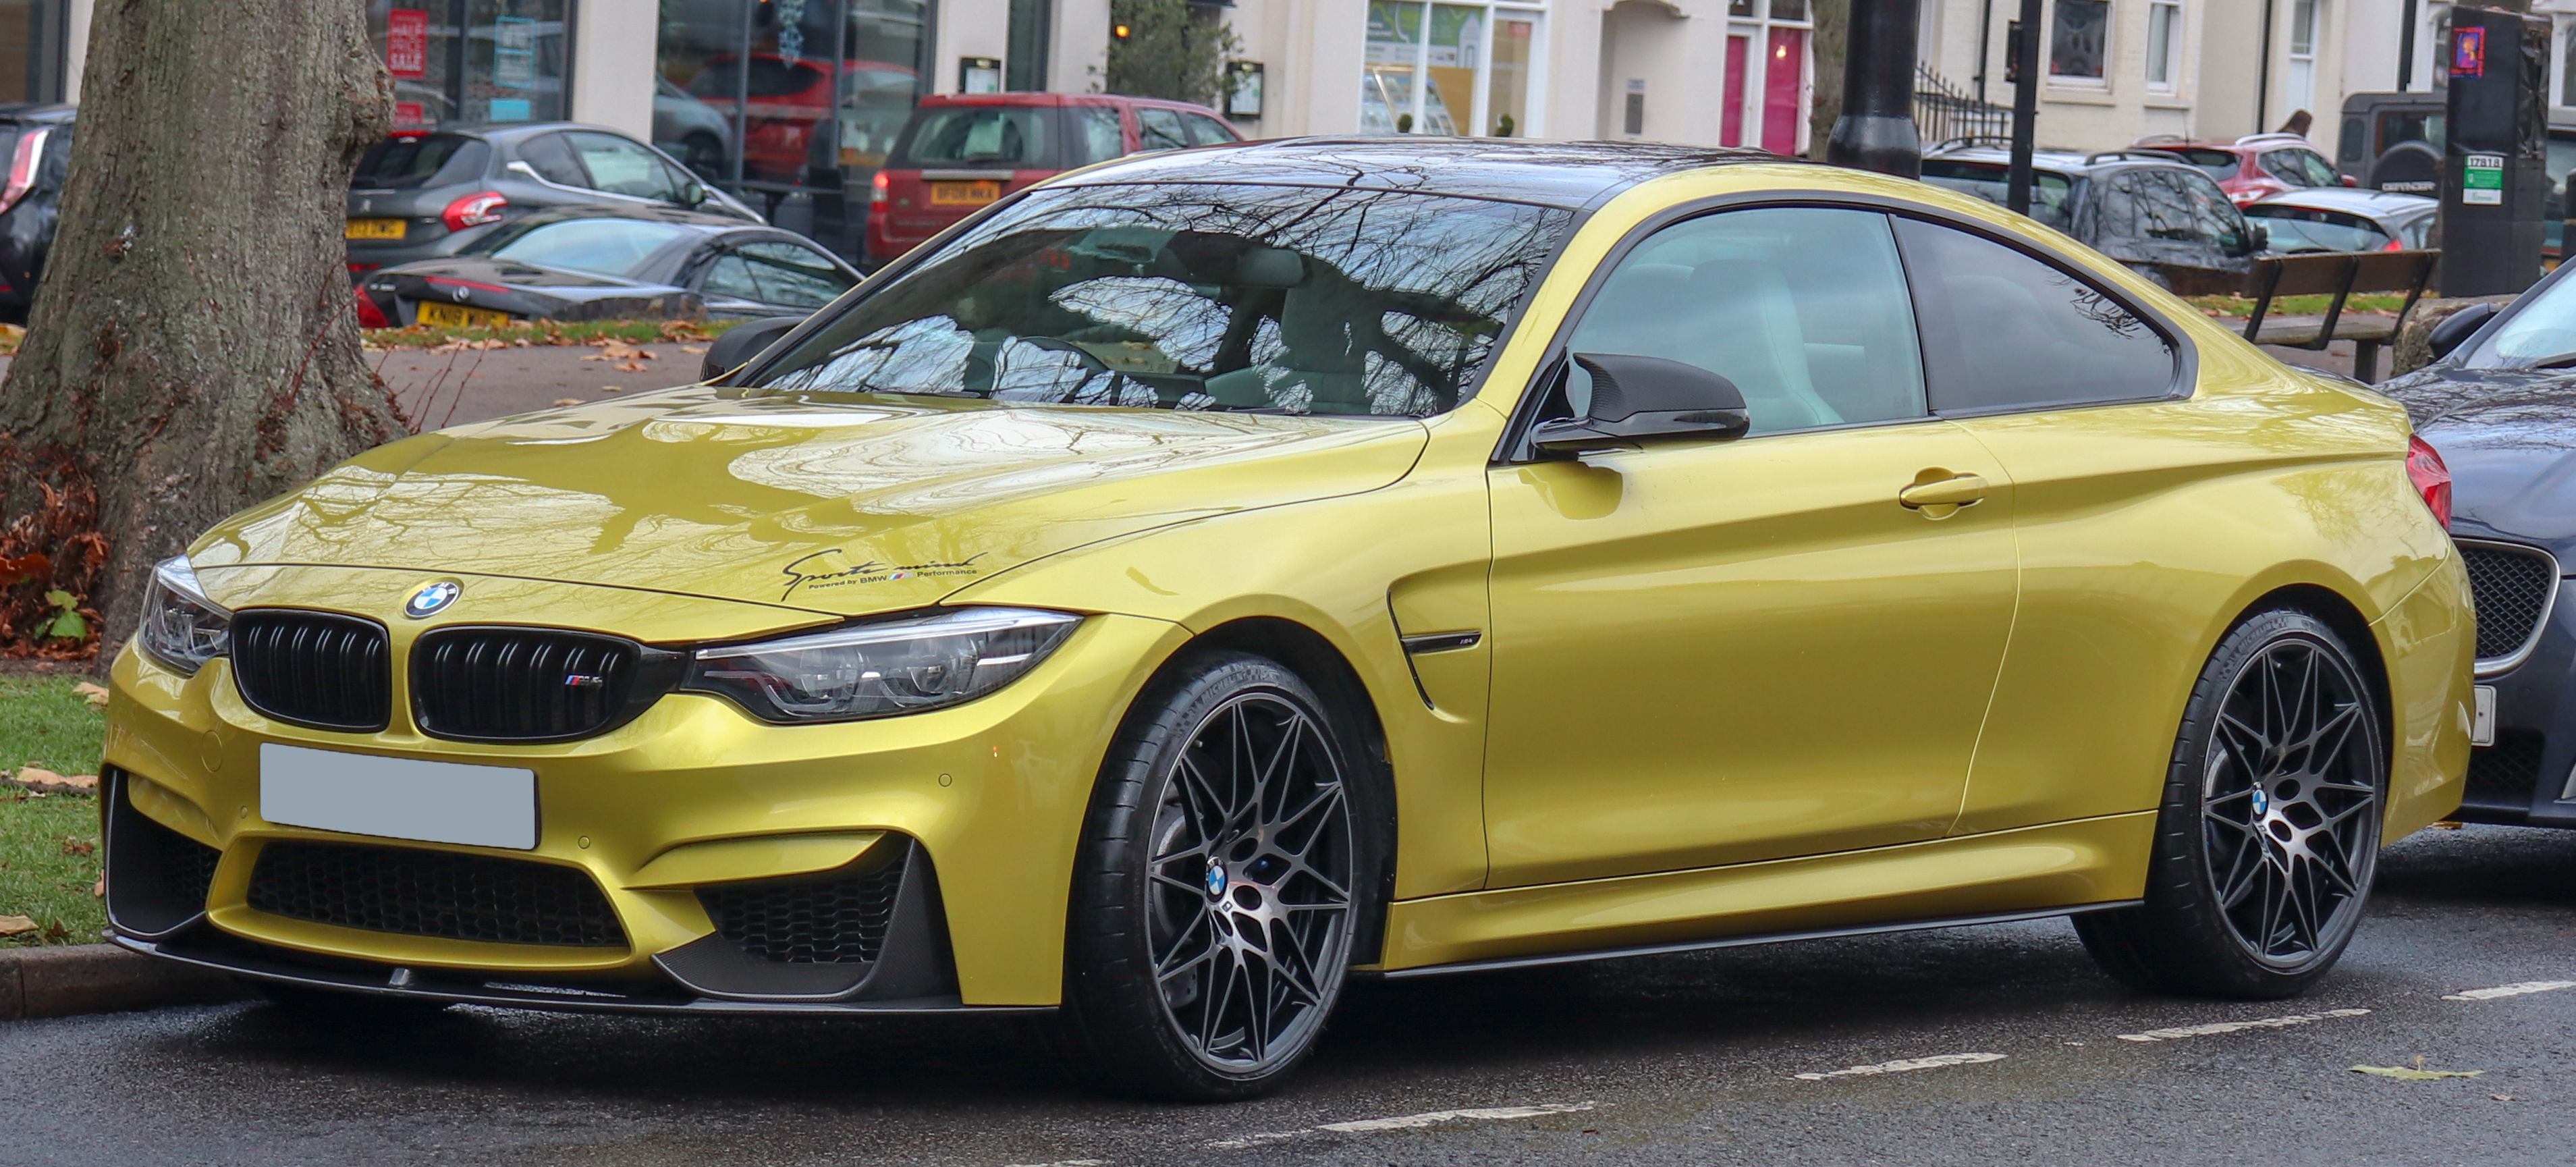 M4 Competition Package >> File 2017 Bmw M4 Competition Package 3 0 Front Jpg